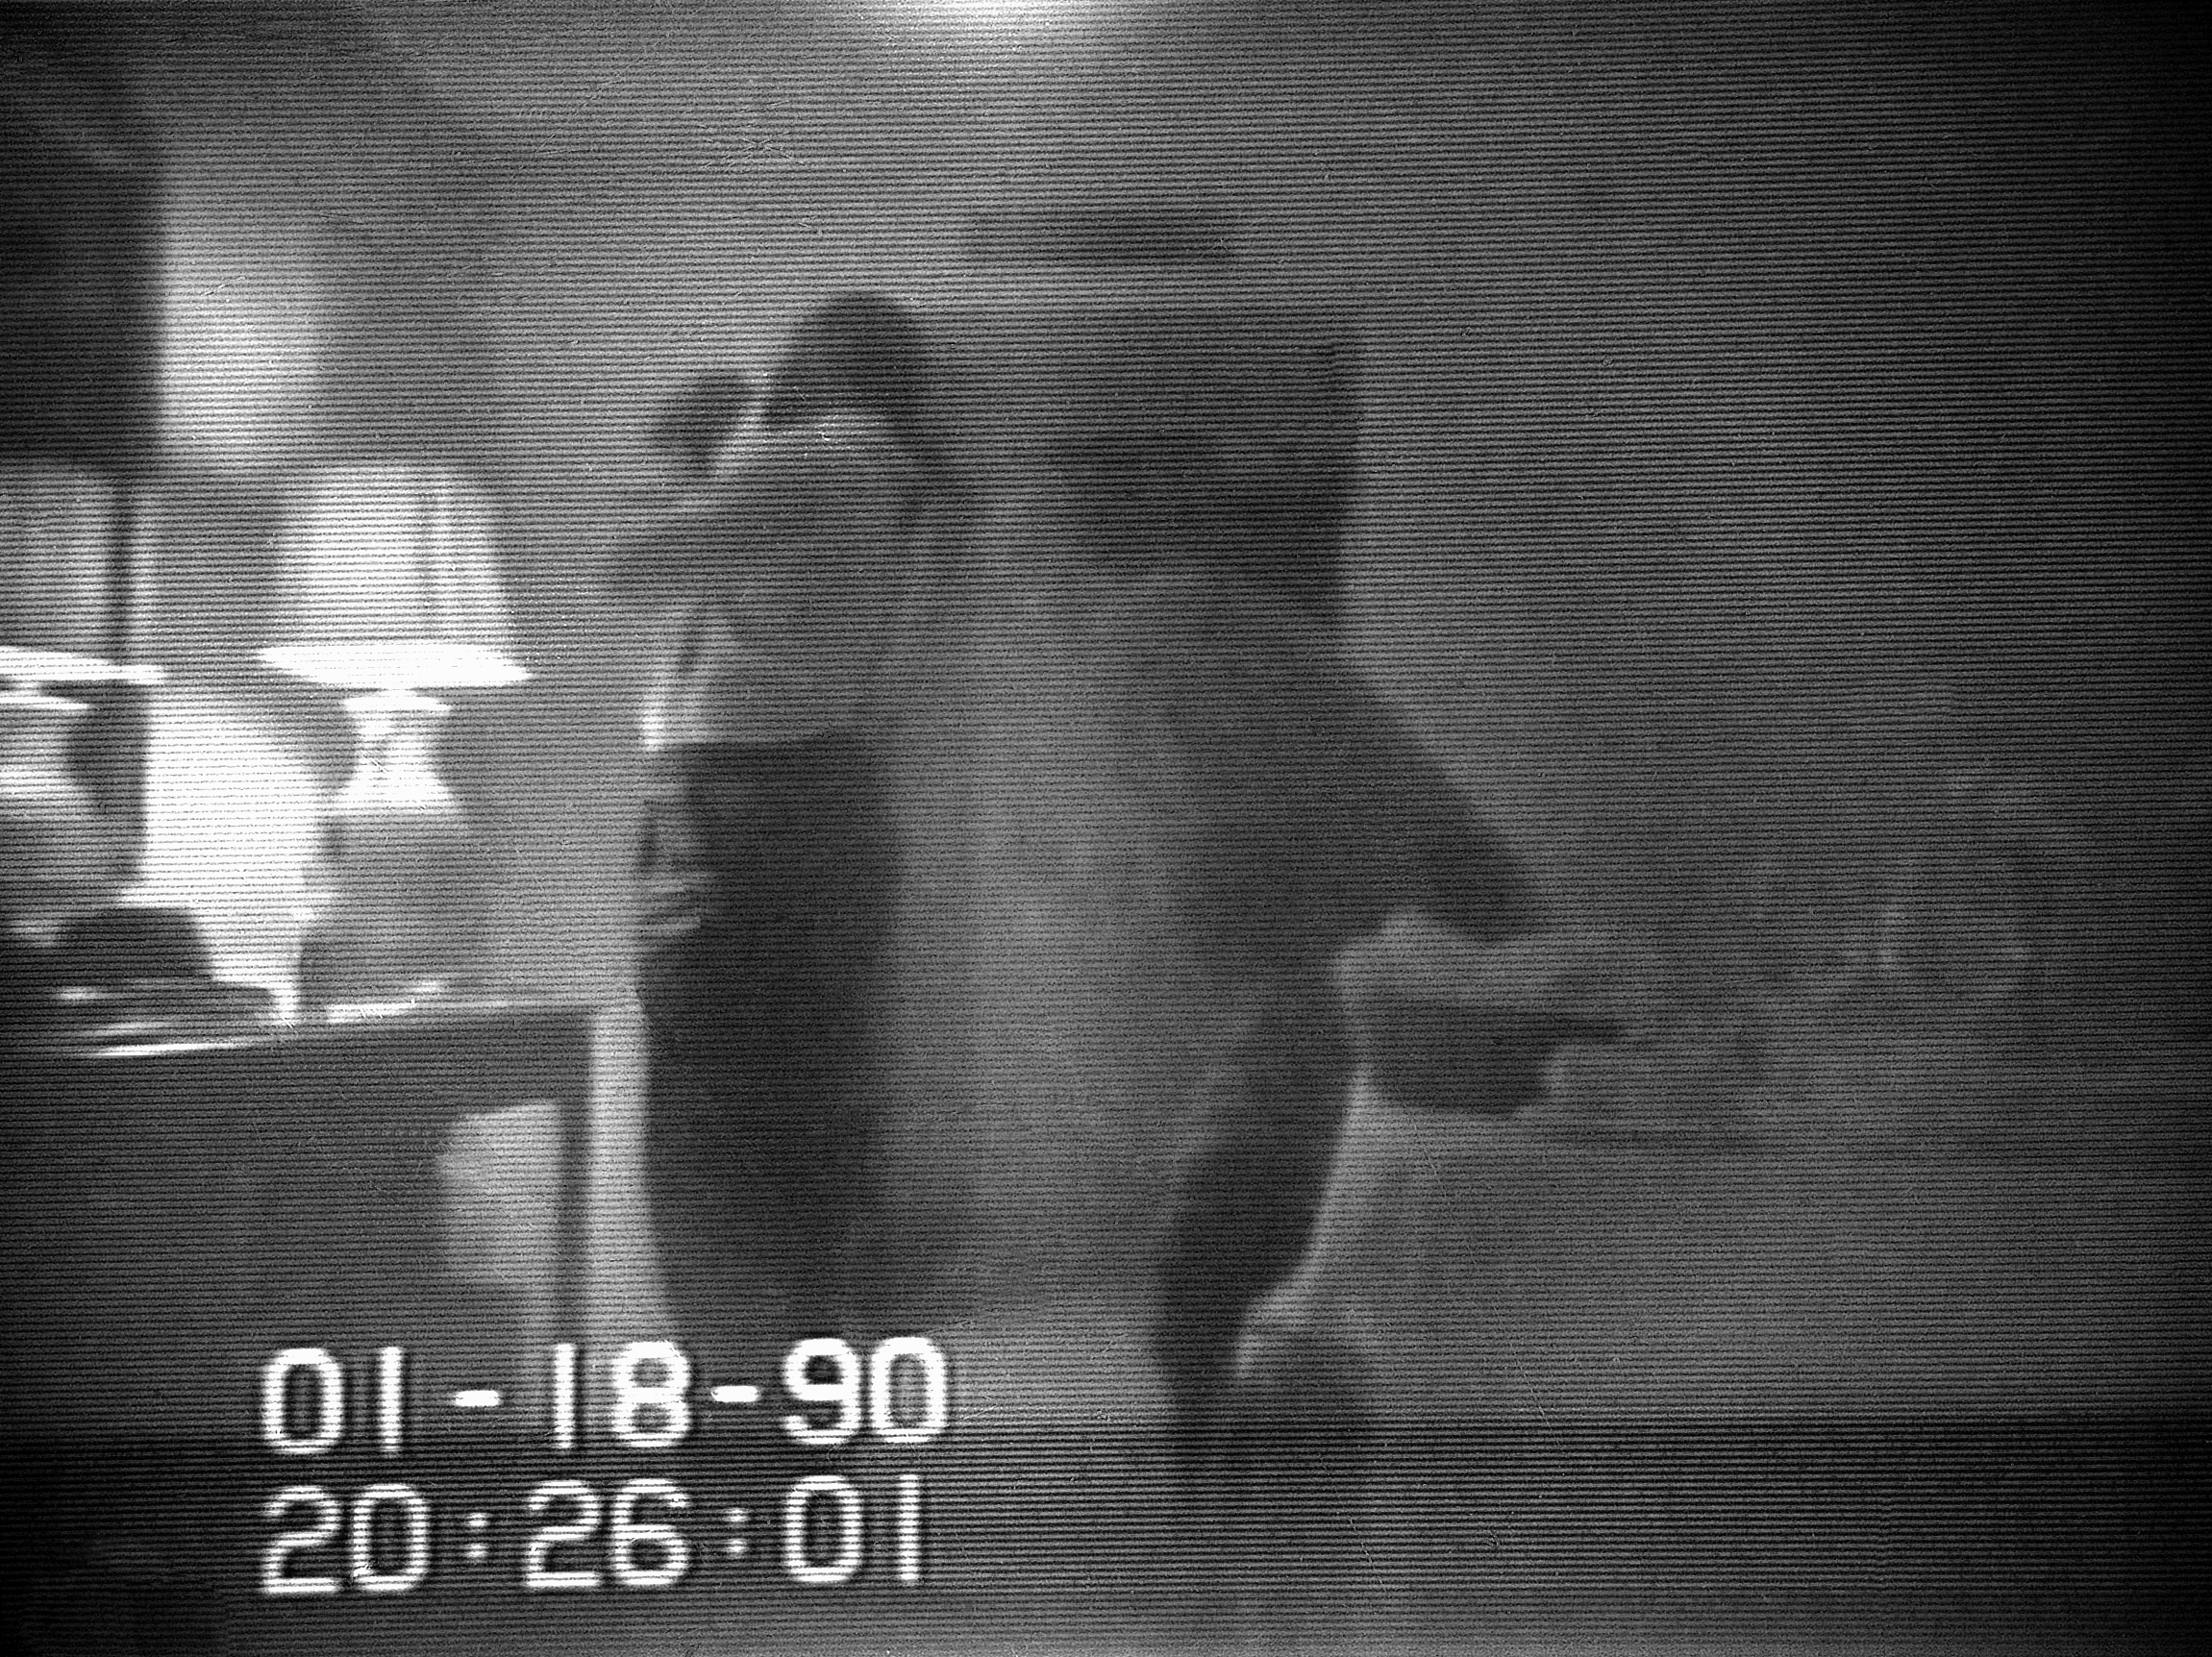 This frame from an FBI videotape used during his trial shows then-Washington Mayor Marion Barry allegedly lighting a crack cocaine pipe in a hotel room on Jan. 18, 1990.